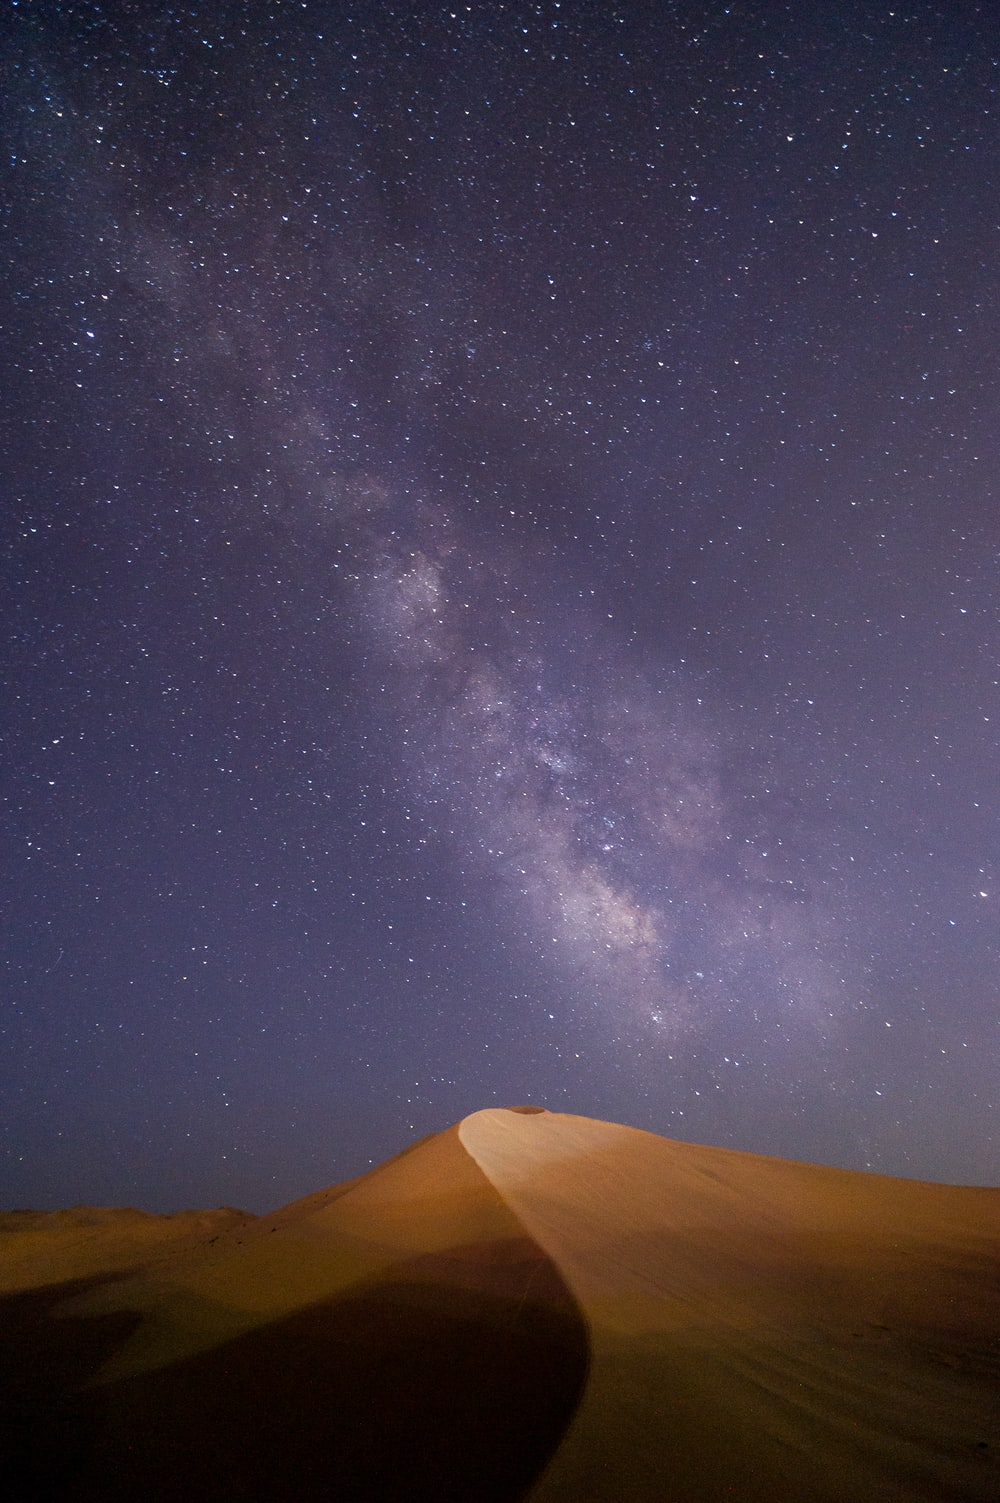 Desert Night Pictures Download Free Images On Unsplash